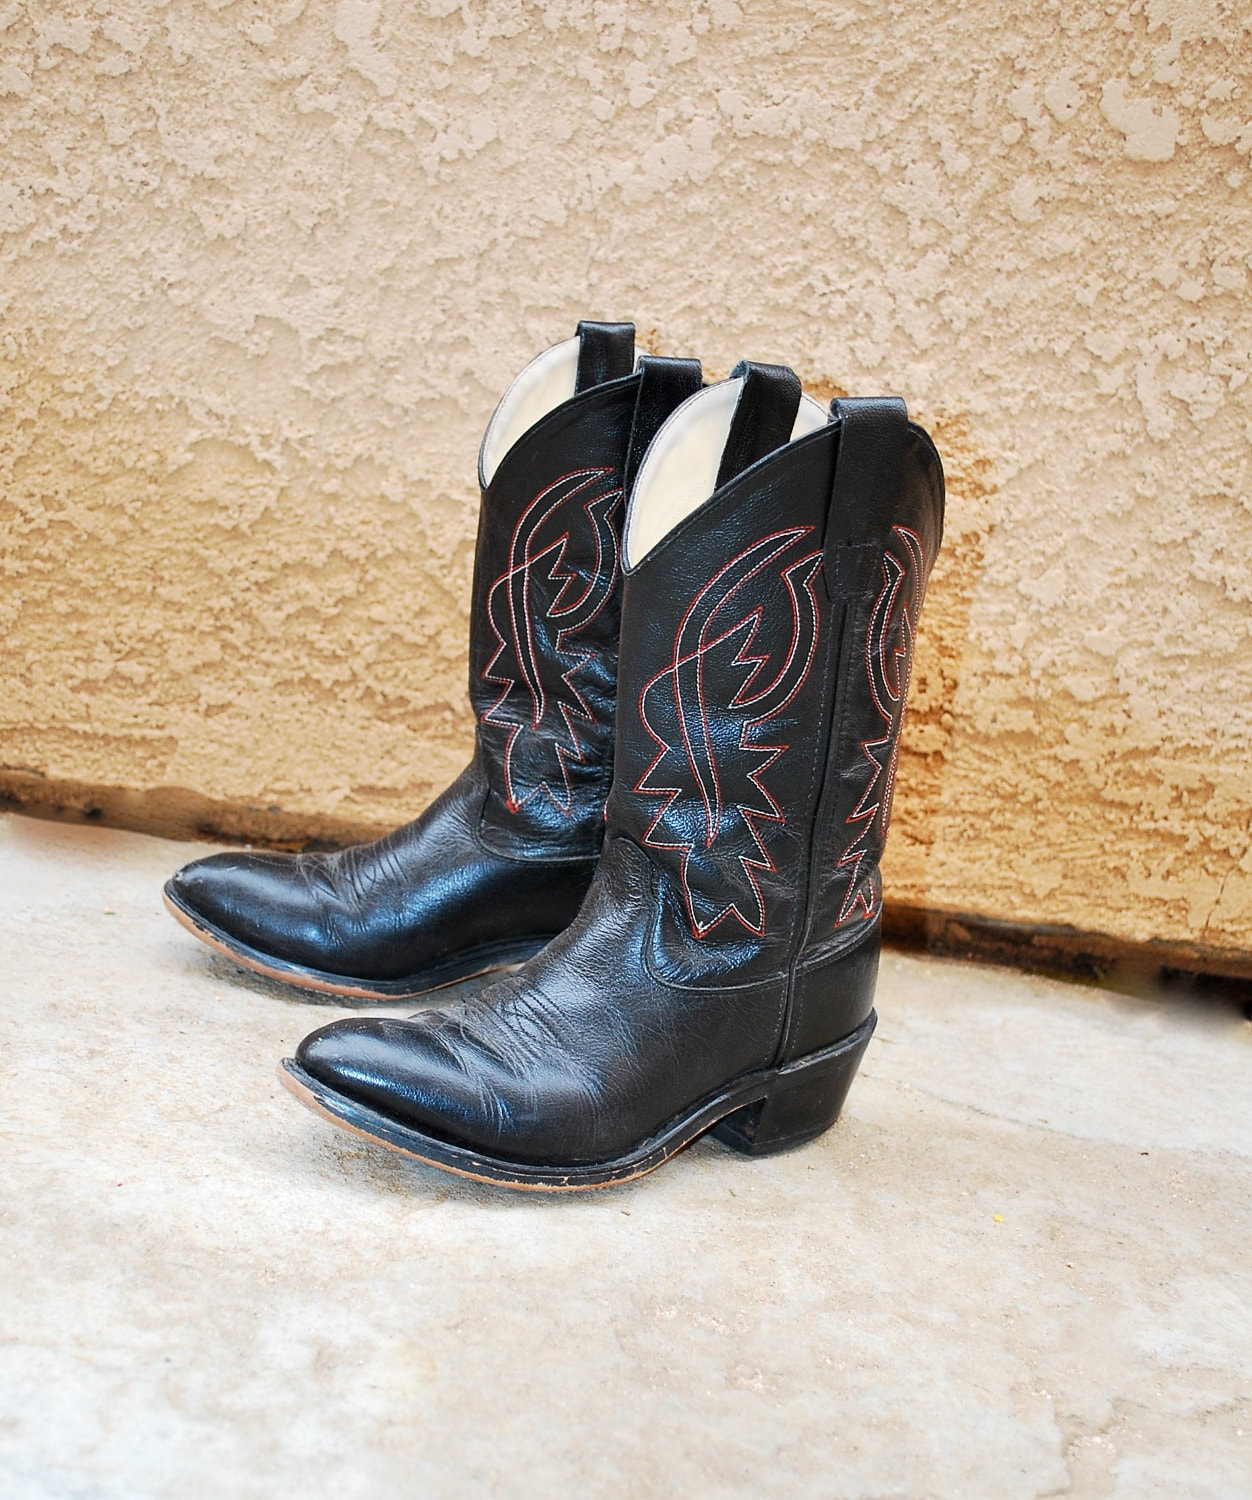 cowboy boots black leather womens size 6 by newagegypsy